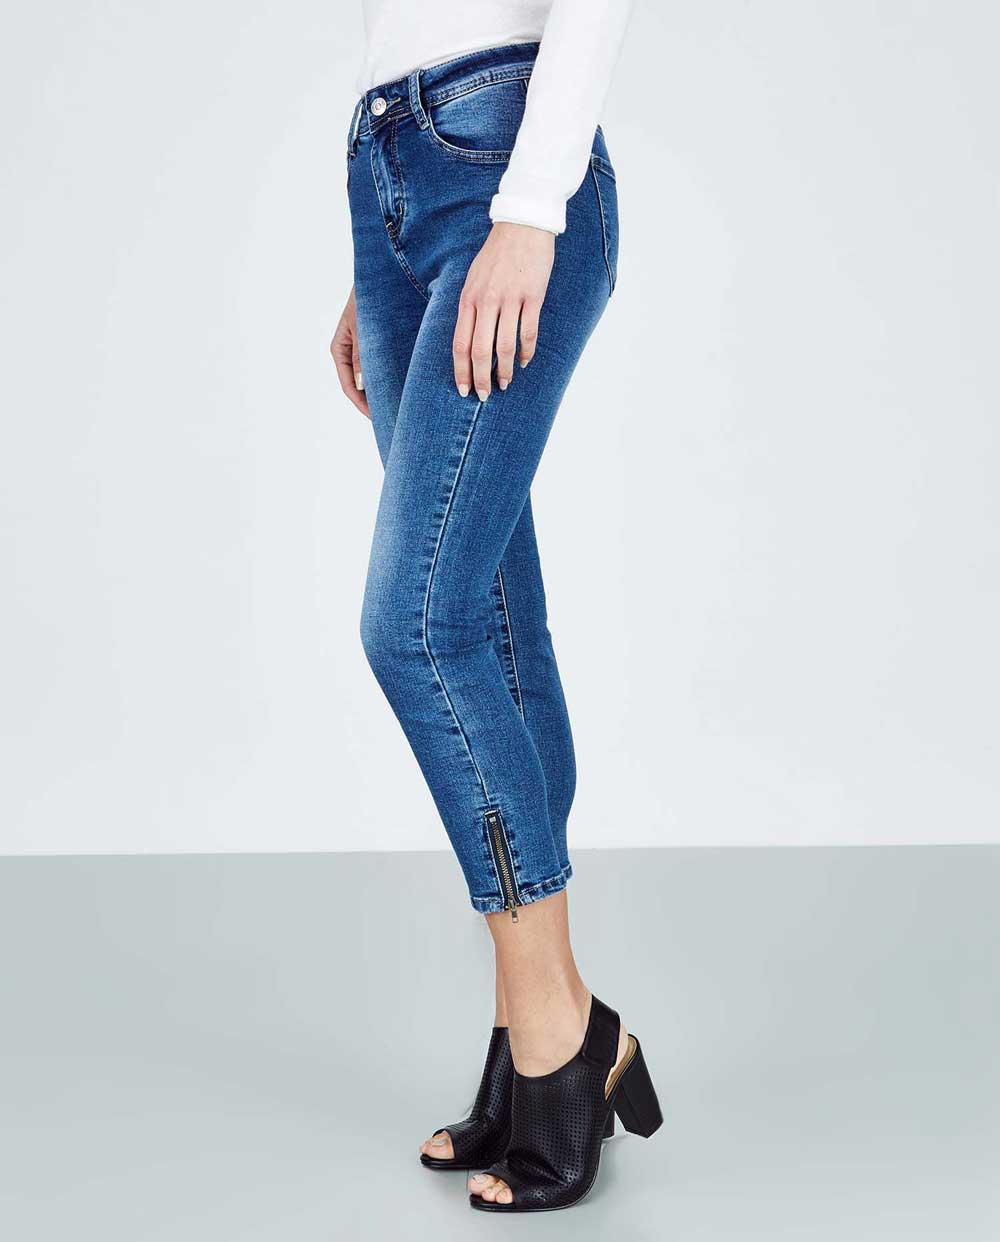 Italy square jeans spring summer 2018